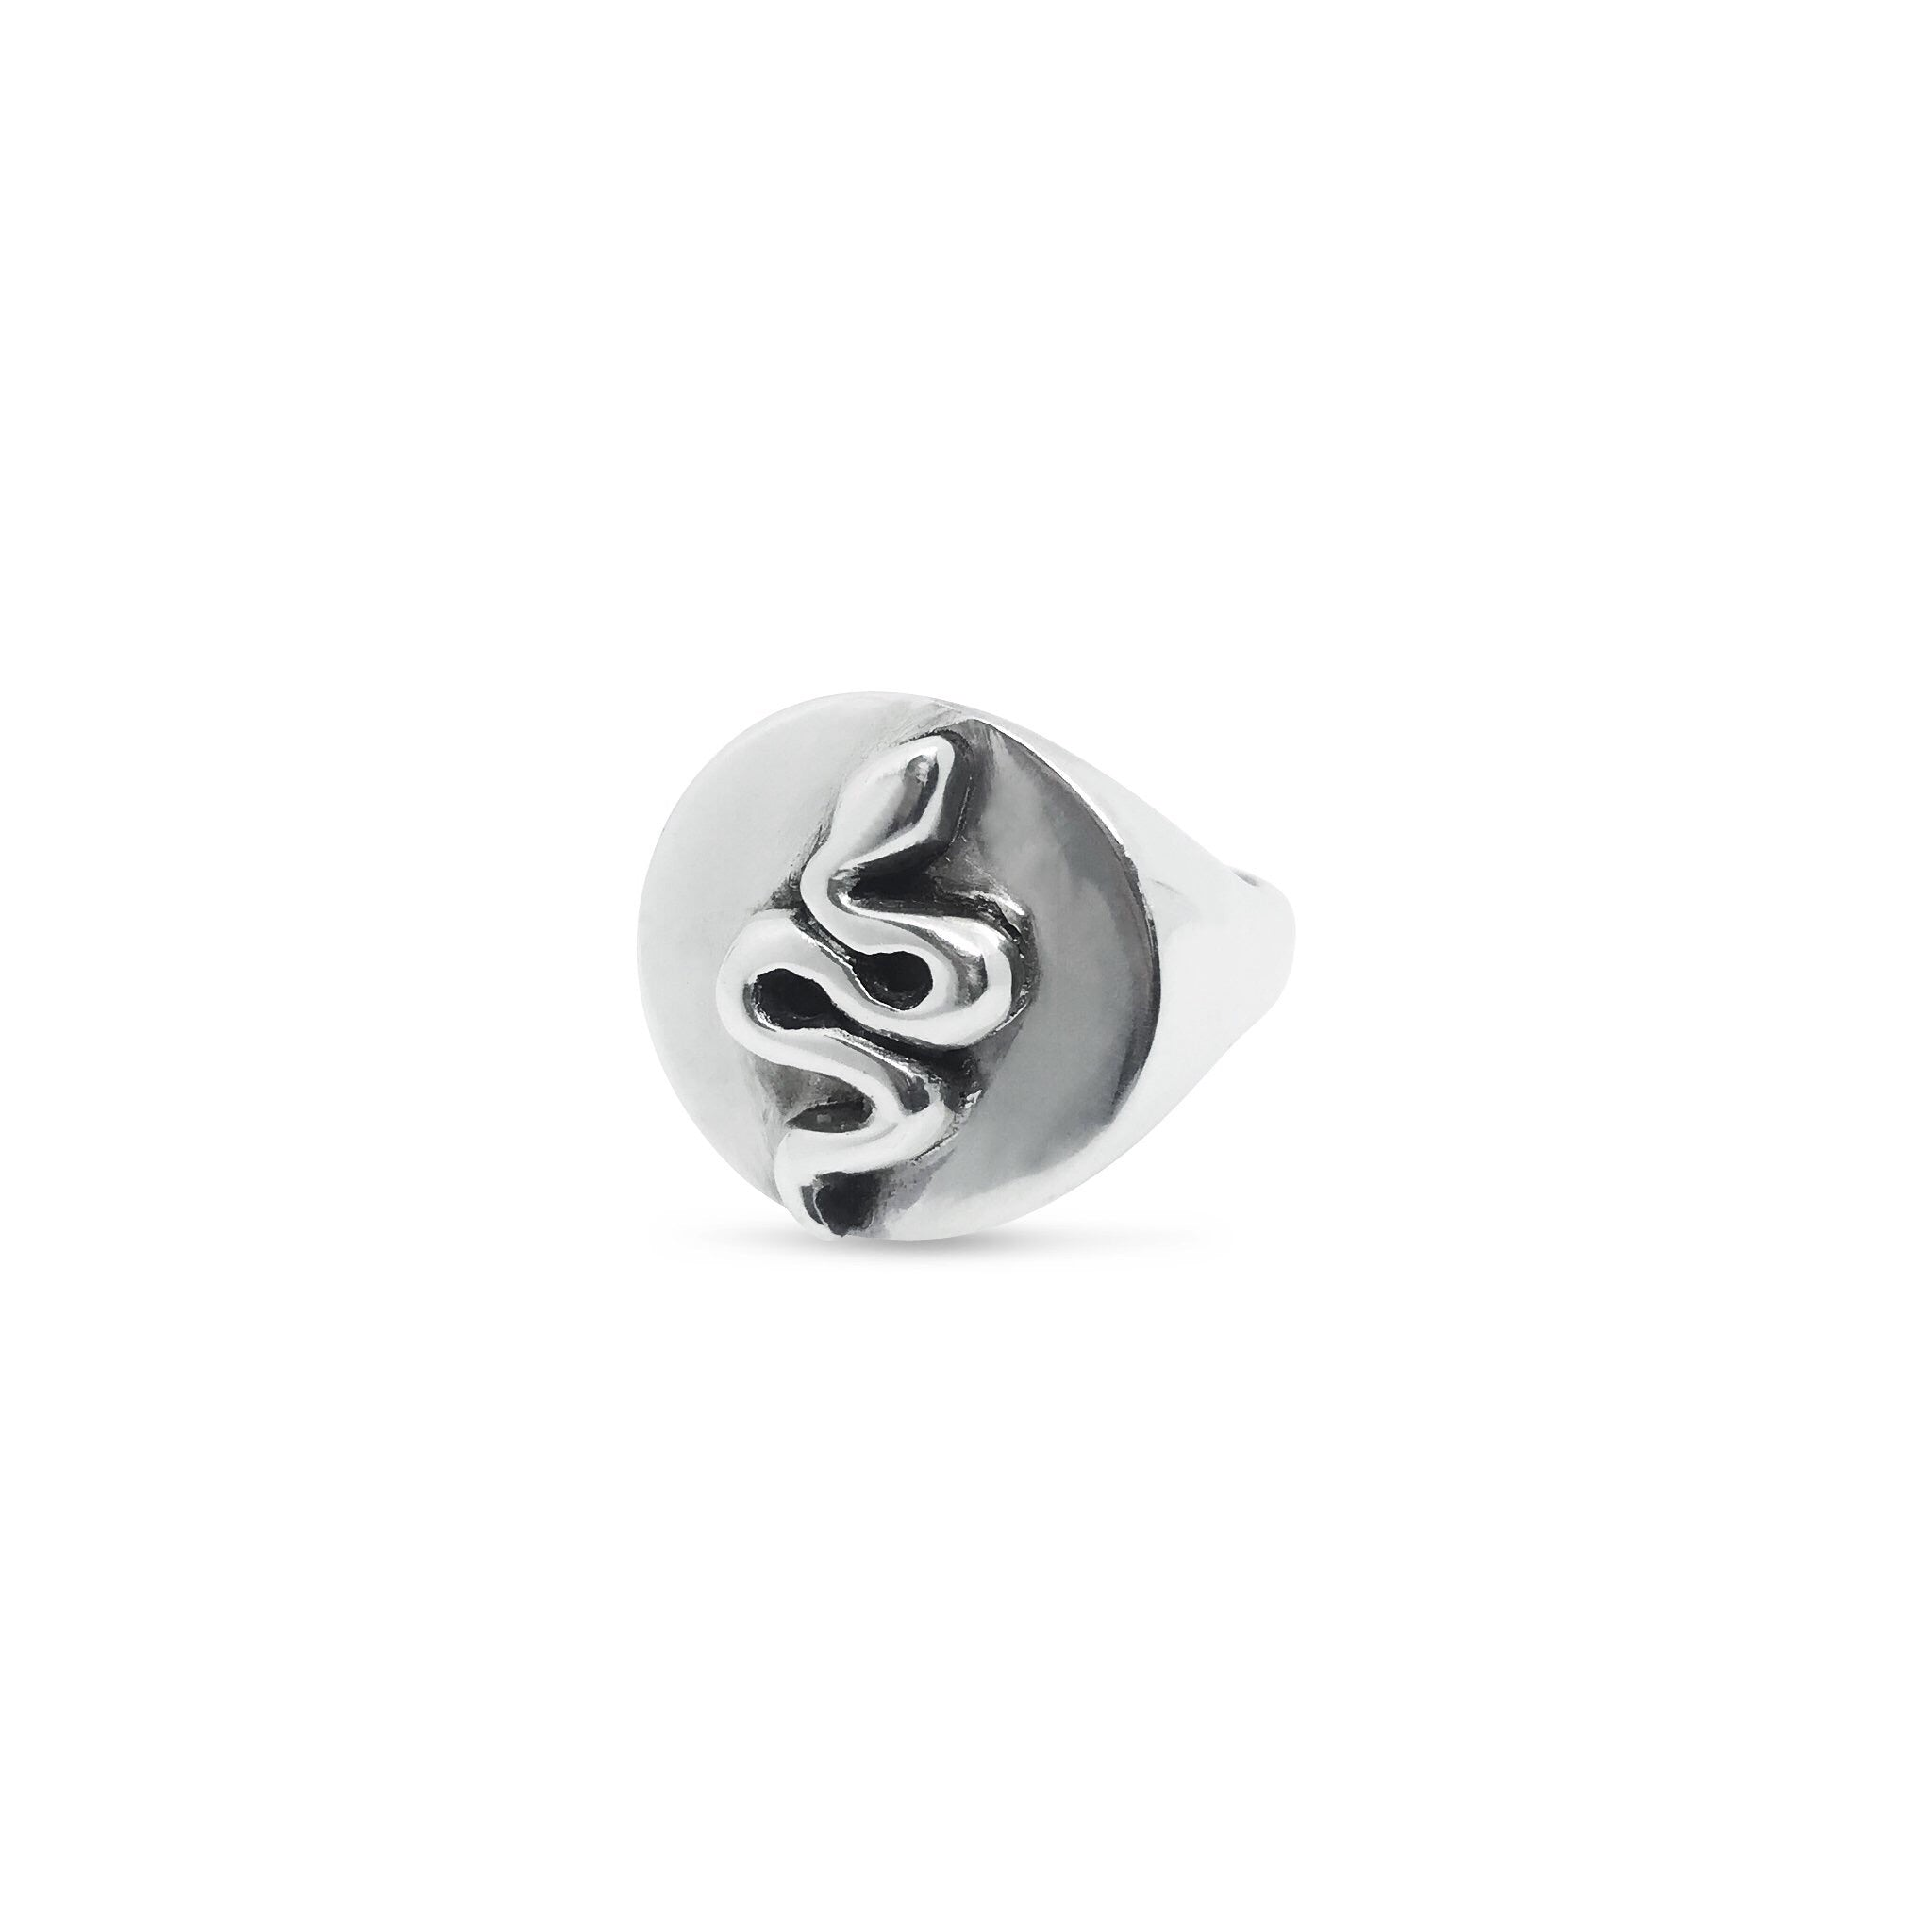 Slither signet ring